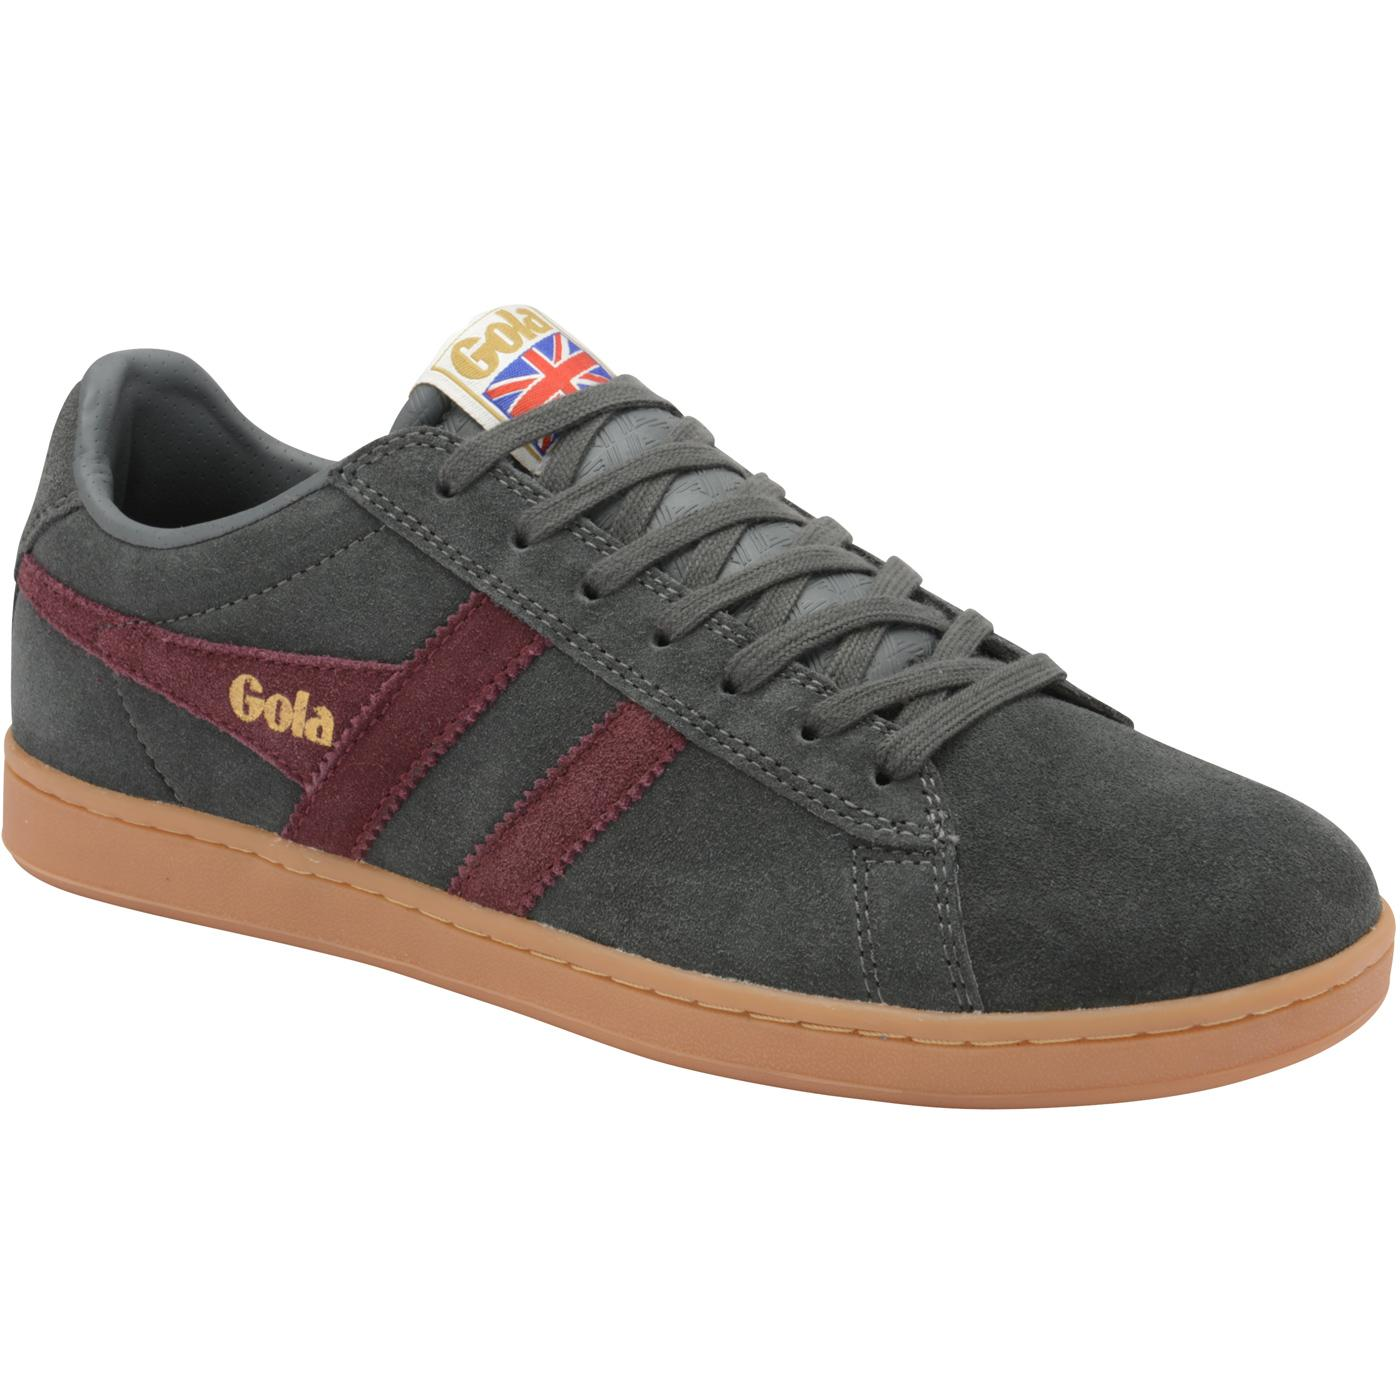 Equipe GOLA Retro Archive Suede Trainers (G/B/G)